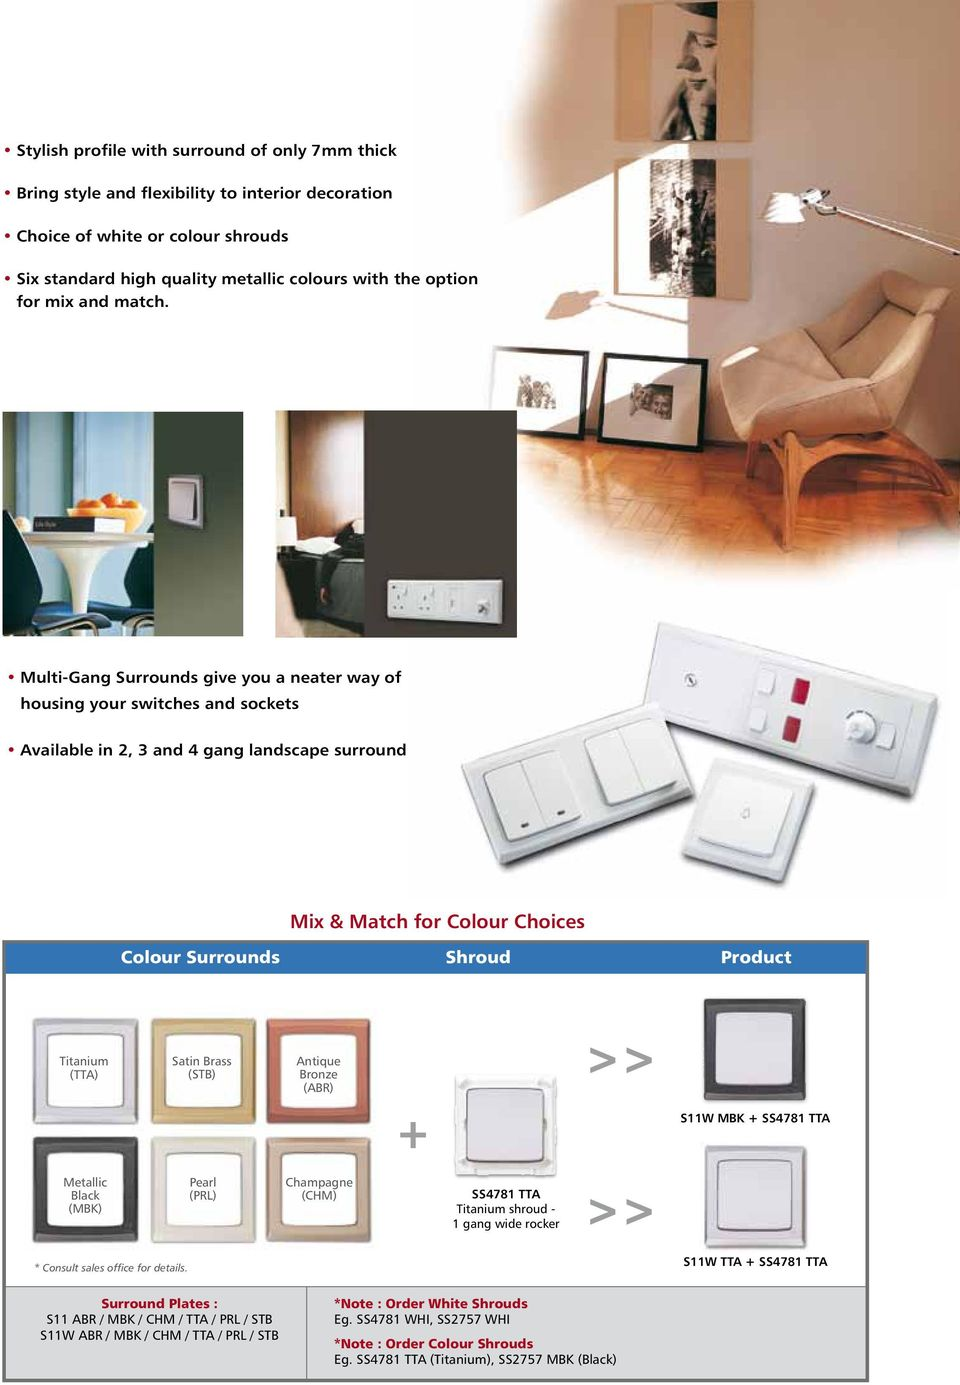 Slimline Plus Catalogue No R6 Pdf Switch Back Box Particularly With Multigang Switches In 2way Or 3 Multi Gang Surrounds Give You A Neater Way Of Housing Your And Sockets Available